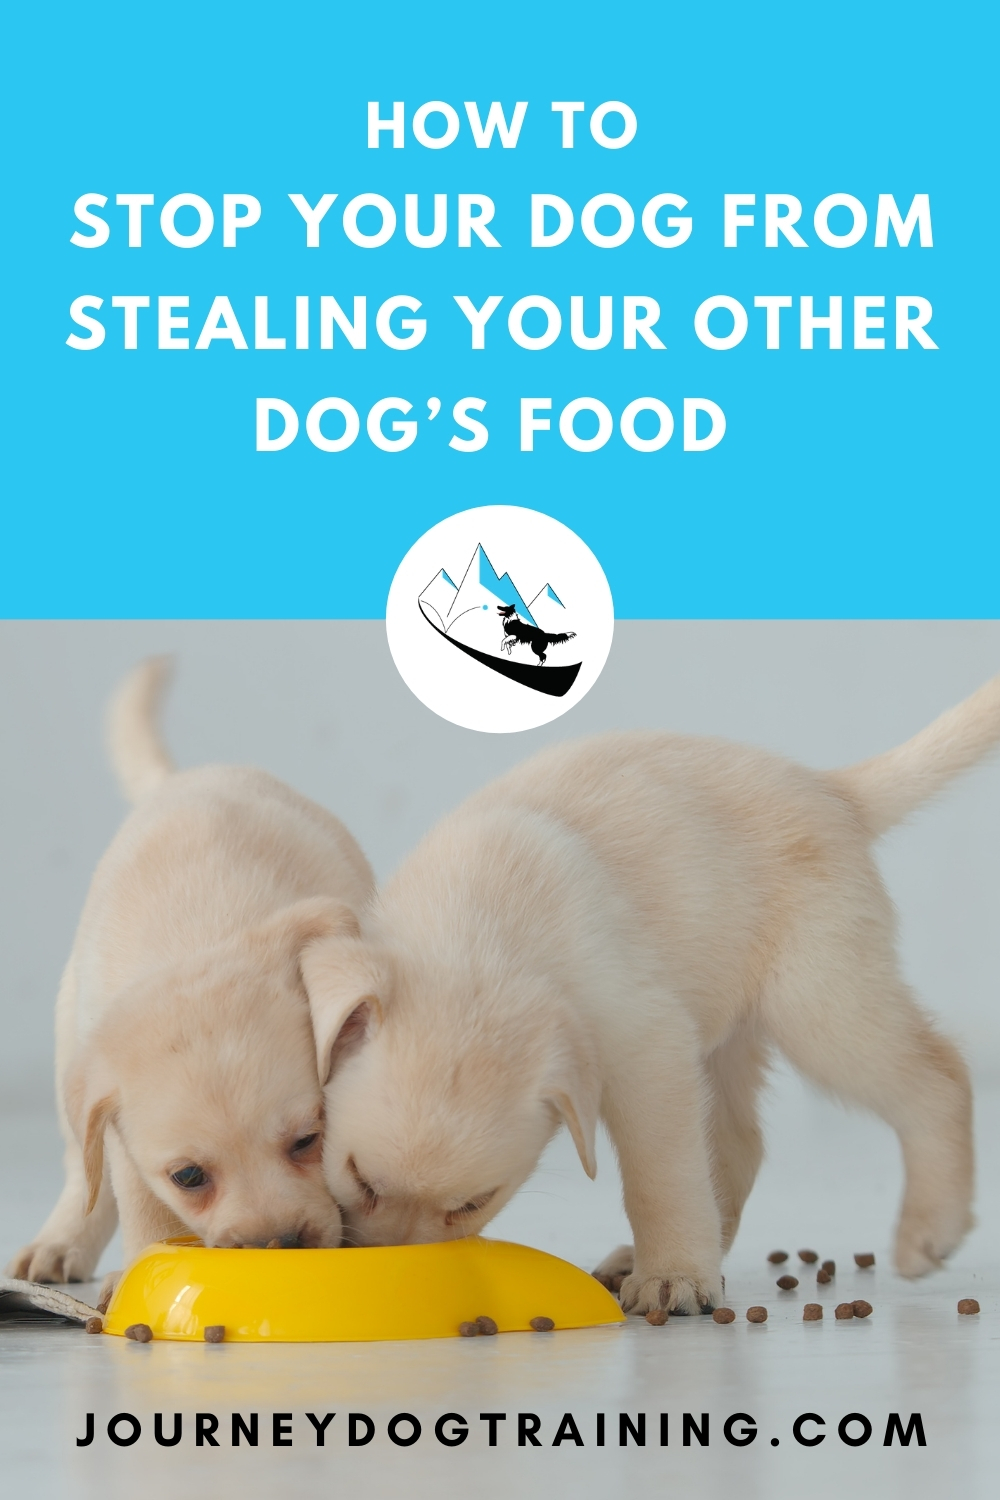 How to stop your dog from stealing your other dog's food. Dogs aren't really good at sharing. So what do you do if one of your dogs has a bad habit of stealing food from your other dogs? The situation gets even trickier if your dog will growl when you try to take food away. So how do you stop this behavior - safely?https://journeydogtraining.com/dog-steals-food-from-other-dogs/